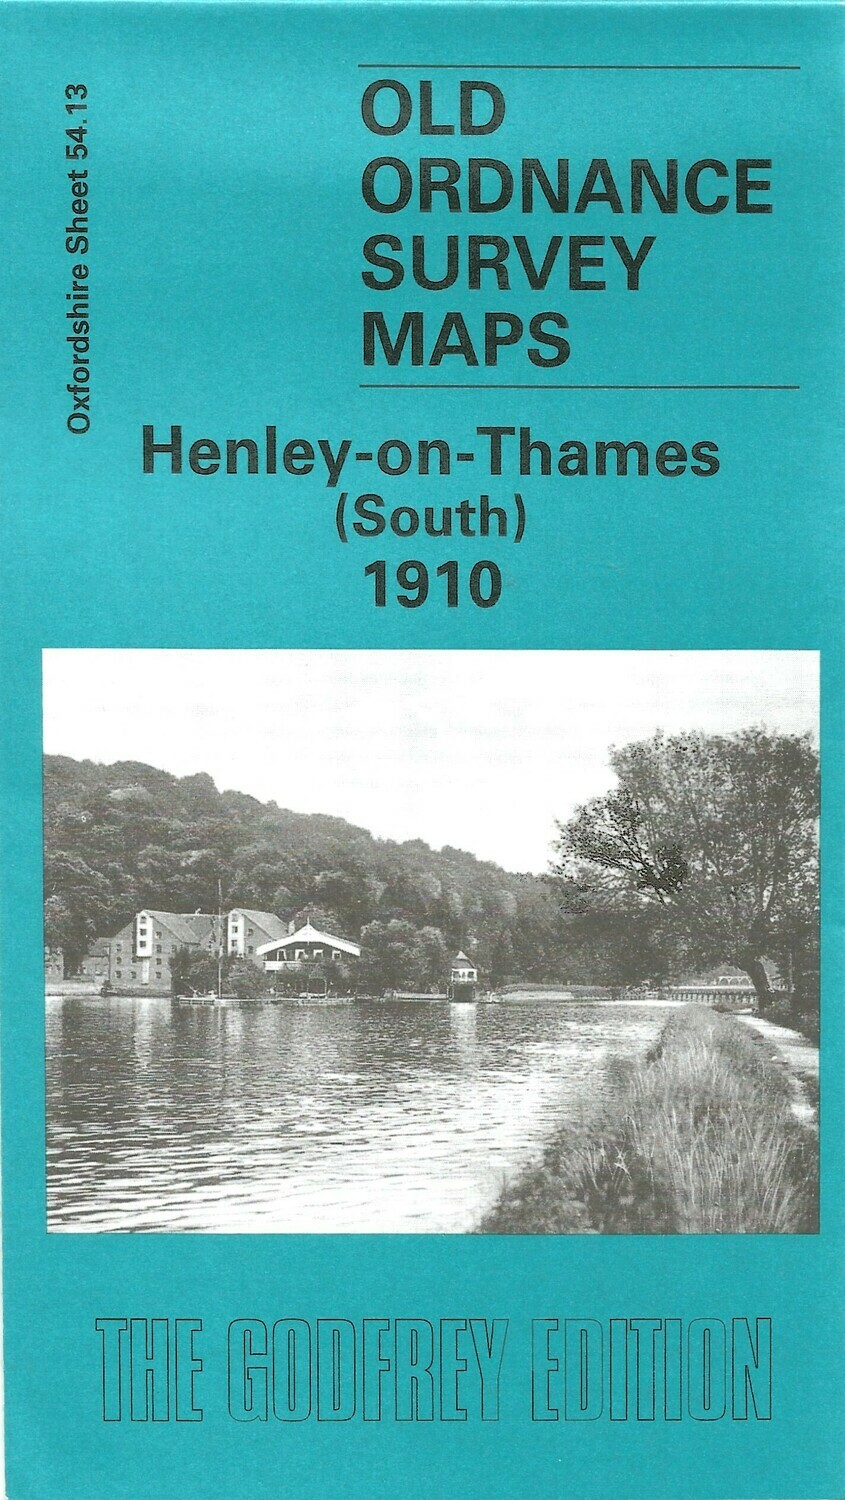 Henley-on-Thames (South) 1910